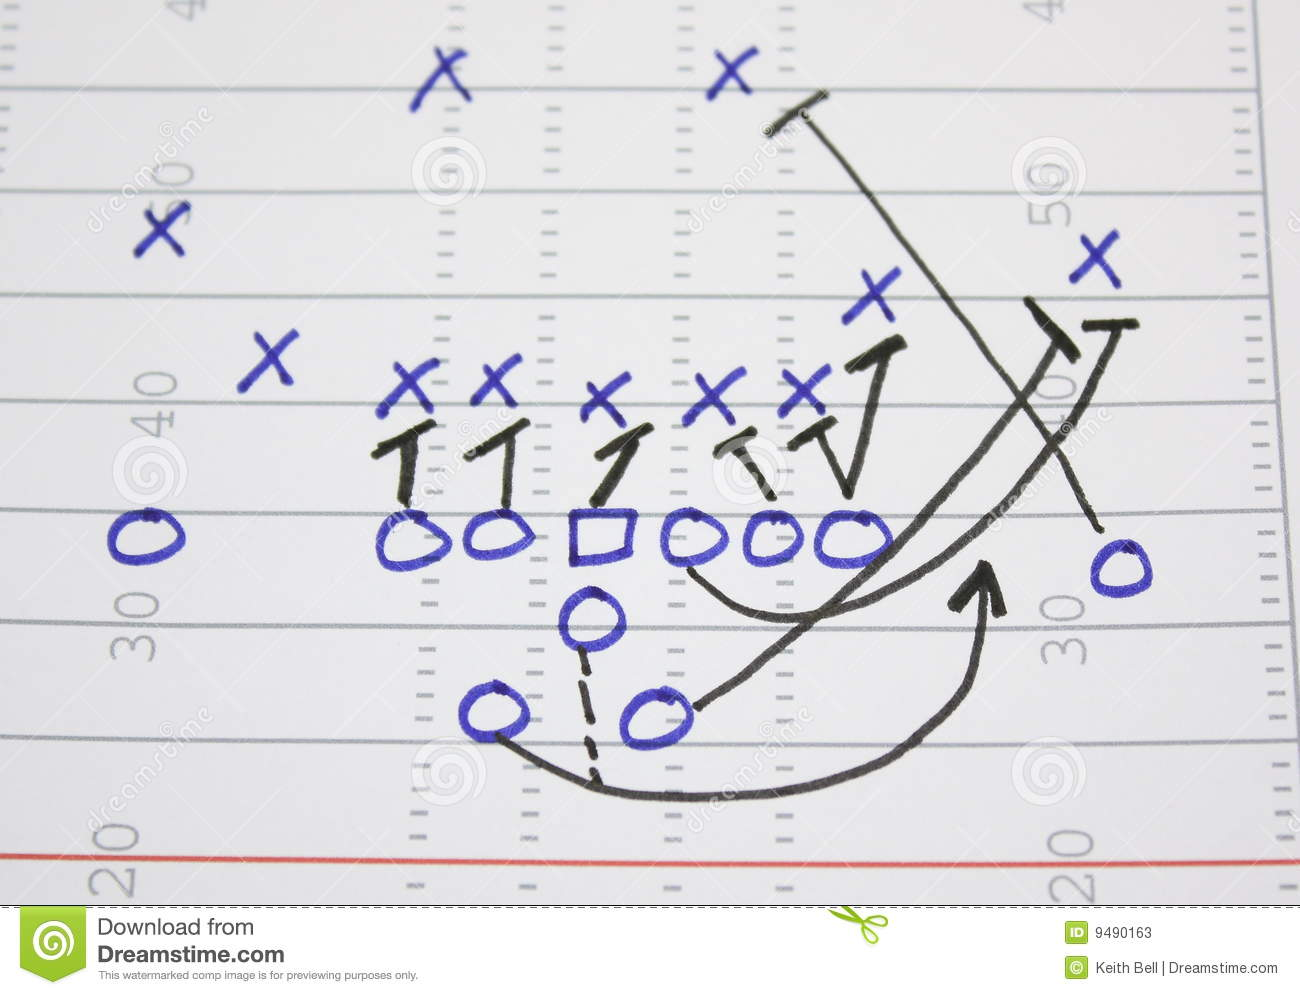 Football play sweep diagram stock image image of chalkboard football play sweep diagram pooptronica Images